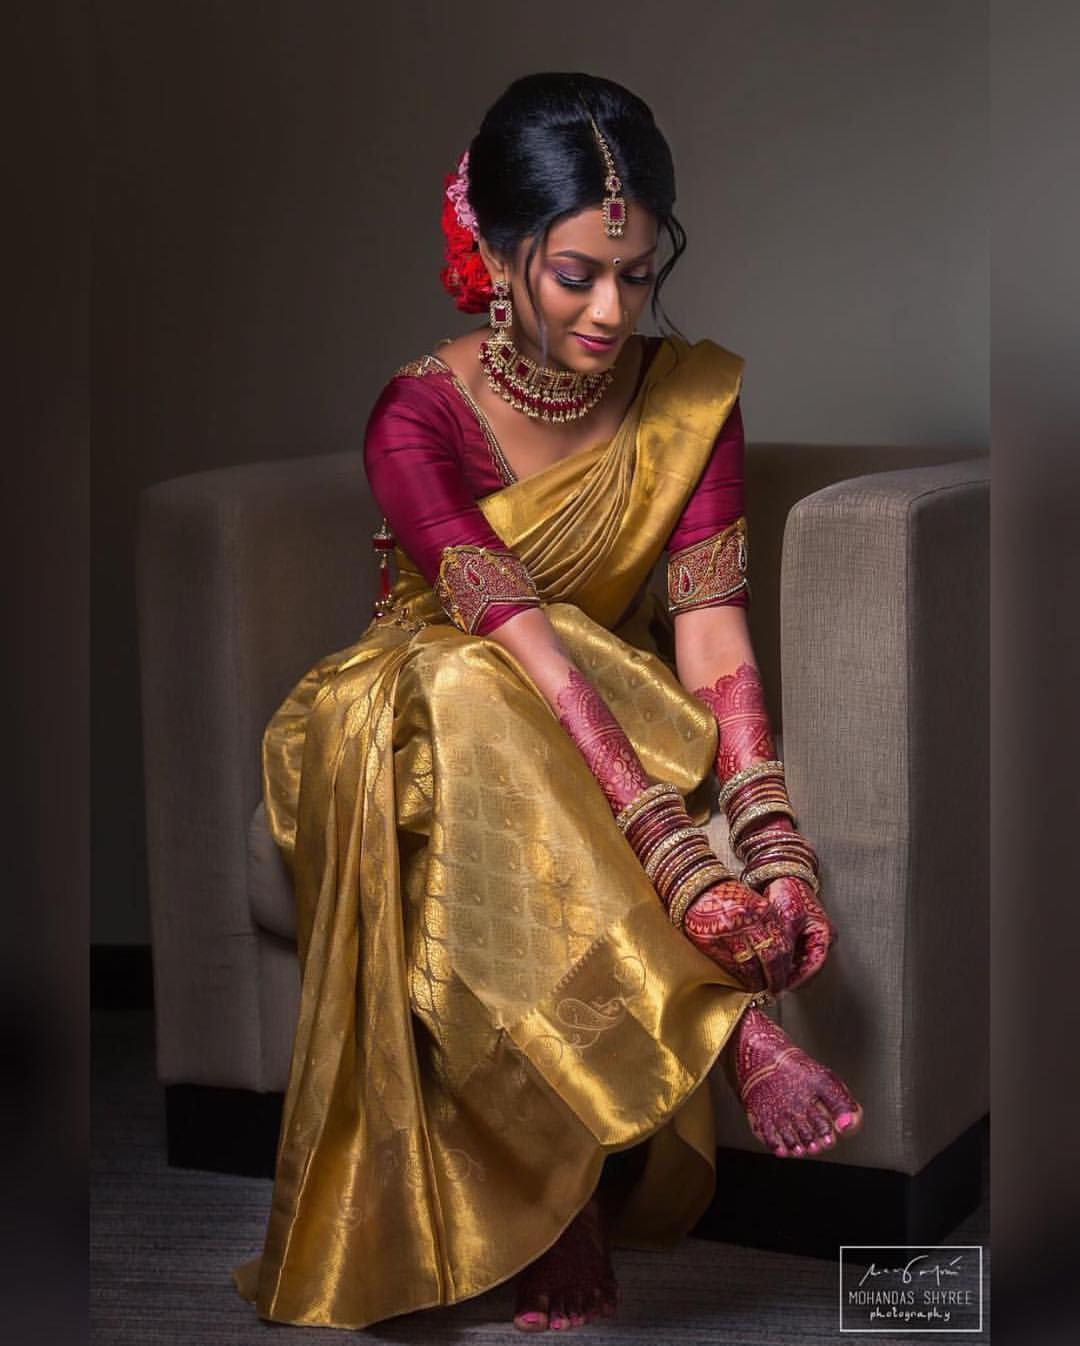 """B L O U Z E S on Instagram: """"💫Stunning in Gold, The Bride Preps Herself To Meet Her Prince Charming 💕 #blouzes  Photography : @mohandas.shyree.photography Mua :…"""""""